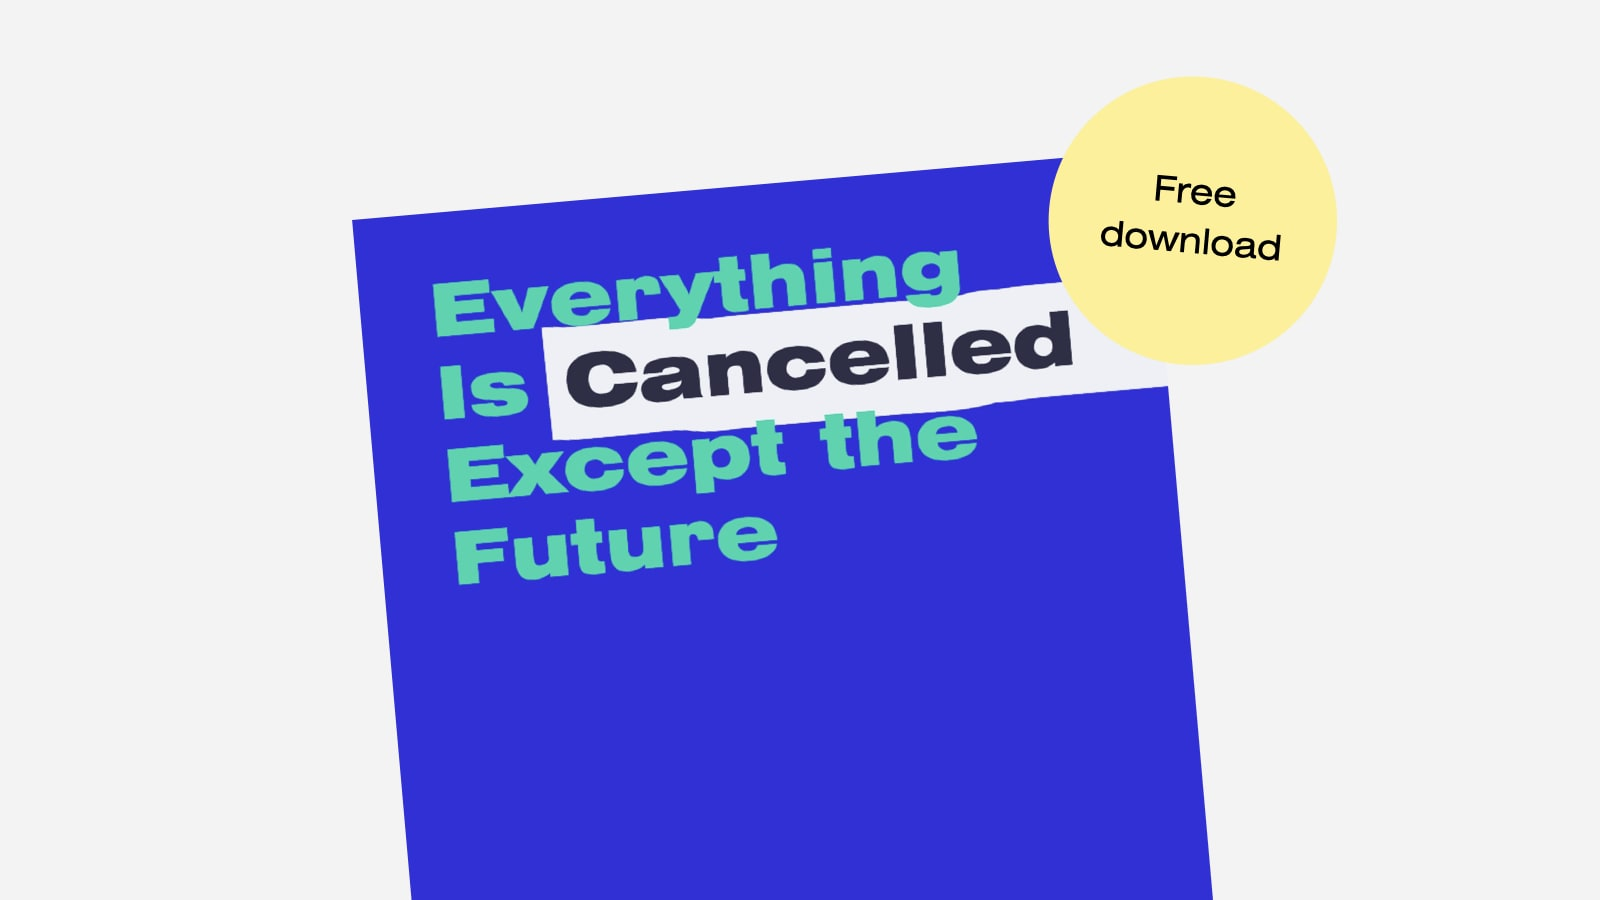 Everything Is Cancelled Except the Future